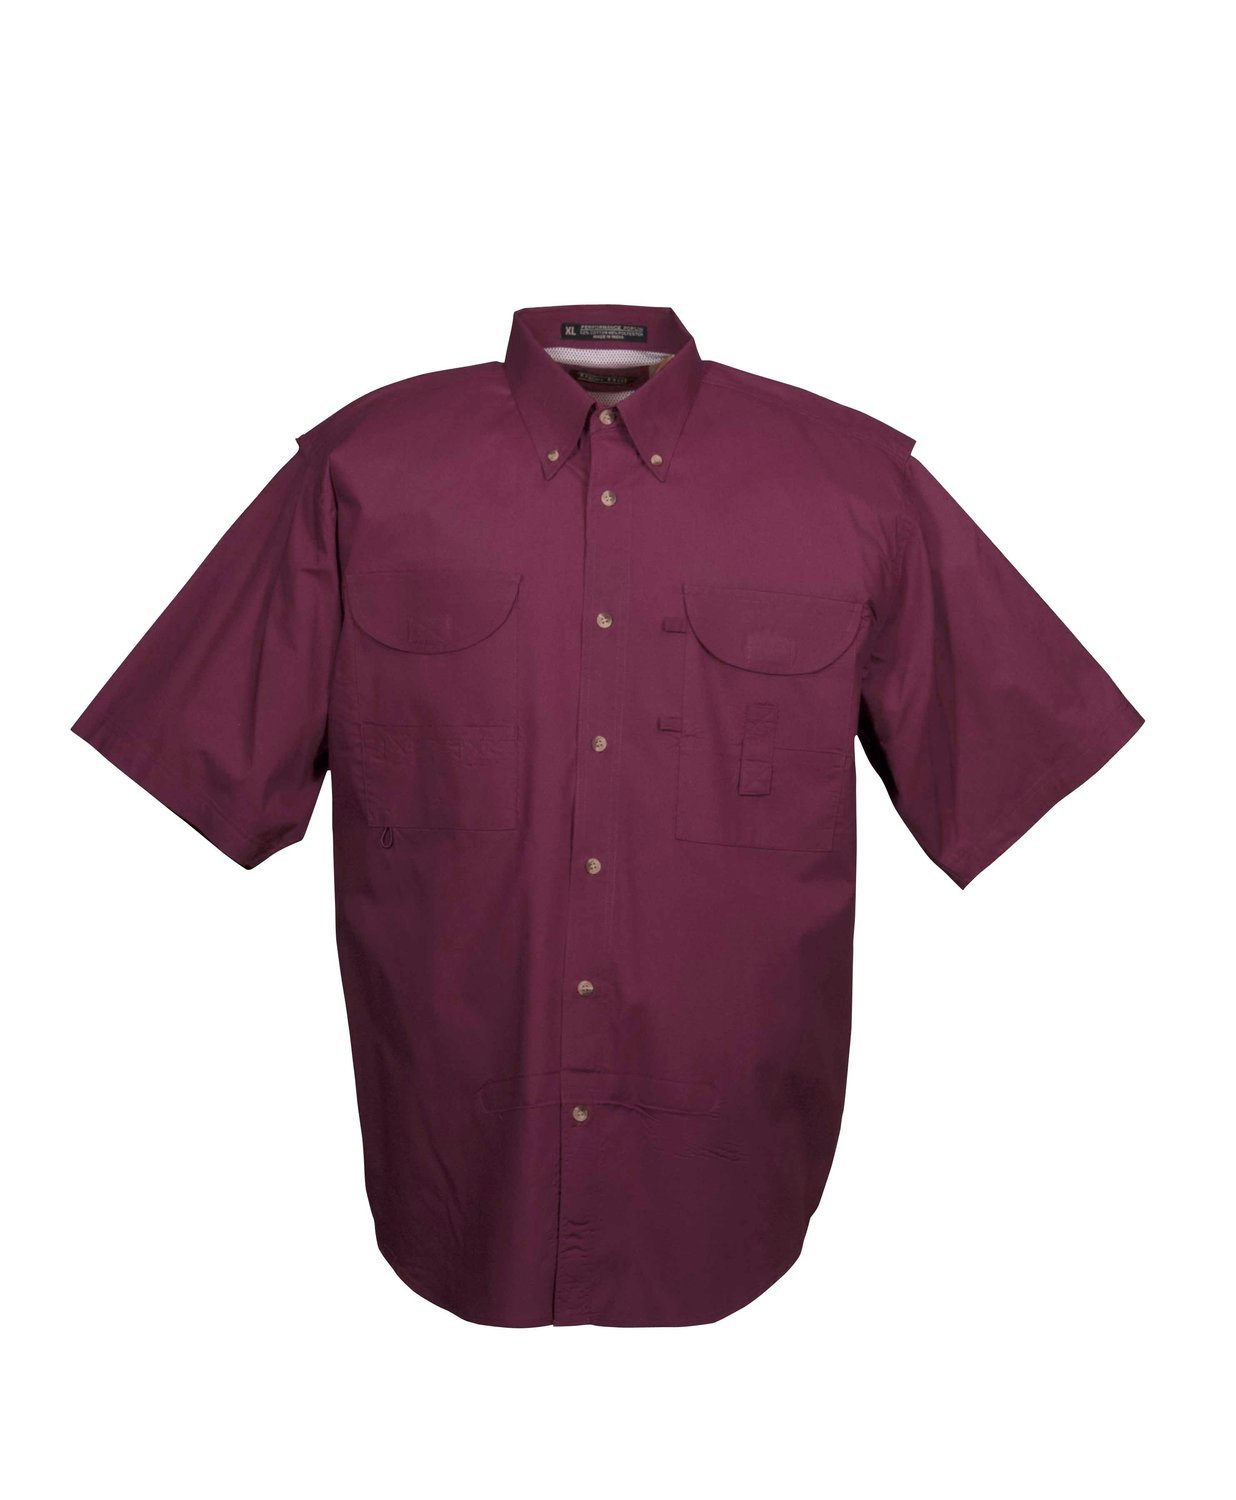 Tiger Hill Men's Fishing Shirt Short Sleeves Maroon